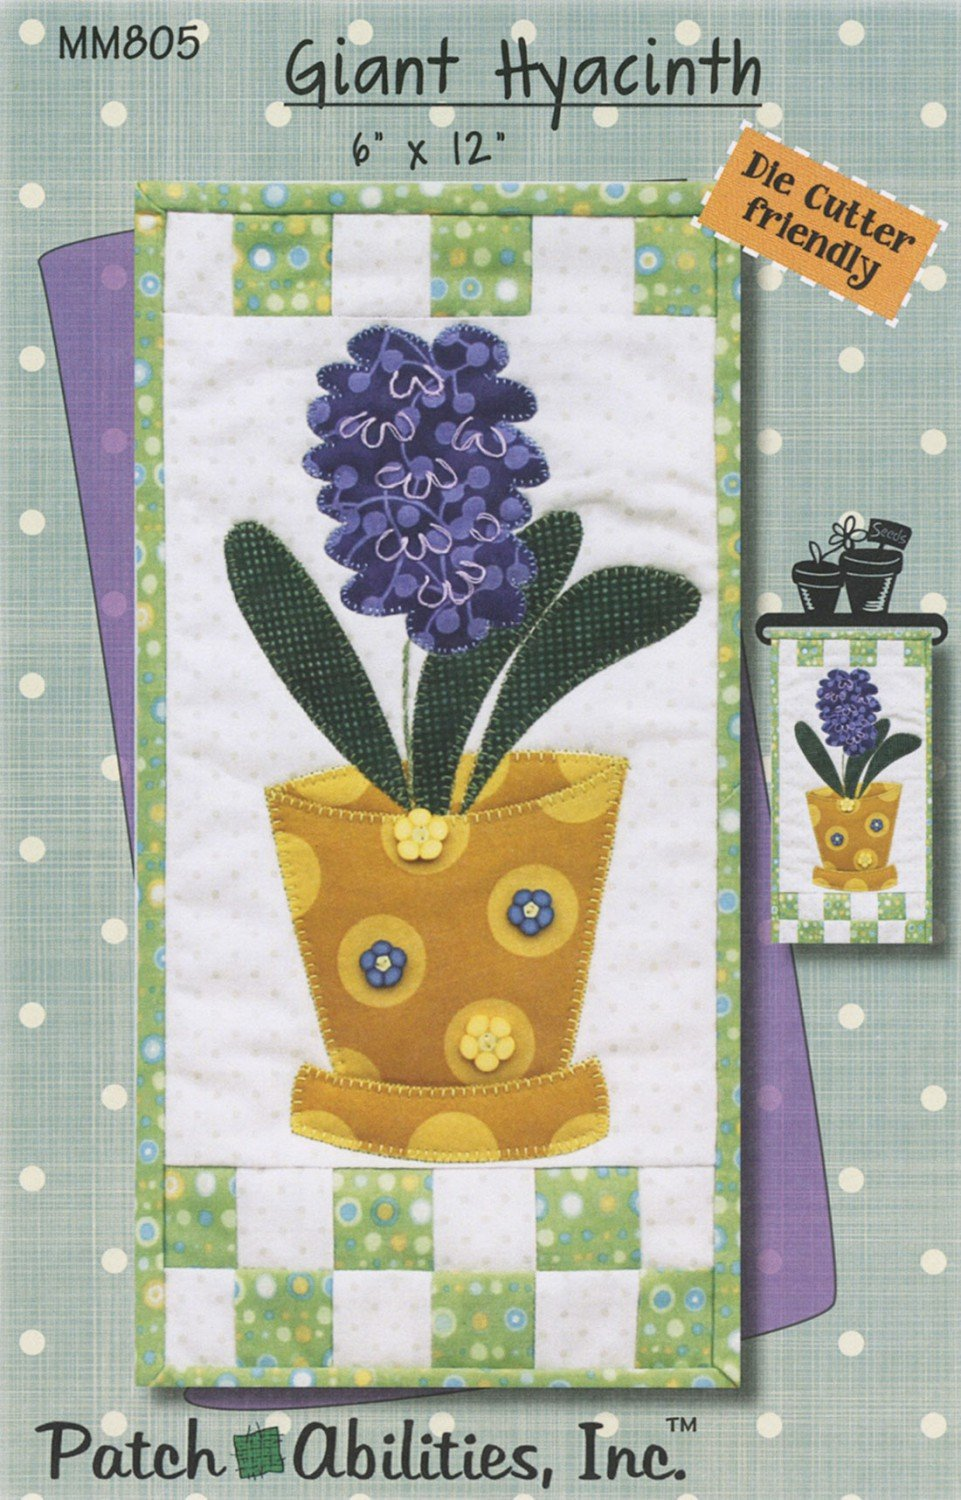 Monthly Mini - Giant Hyacinth